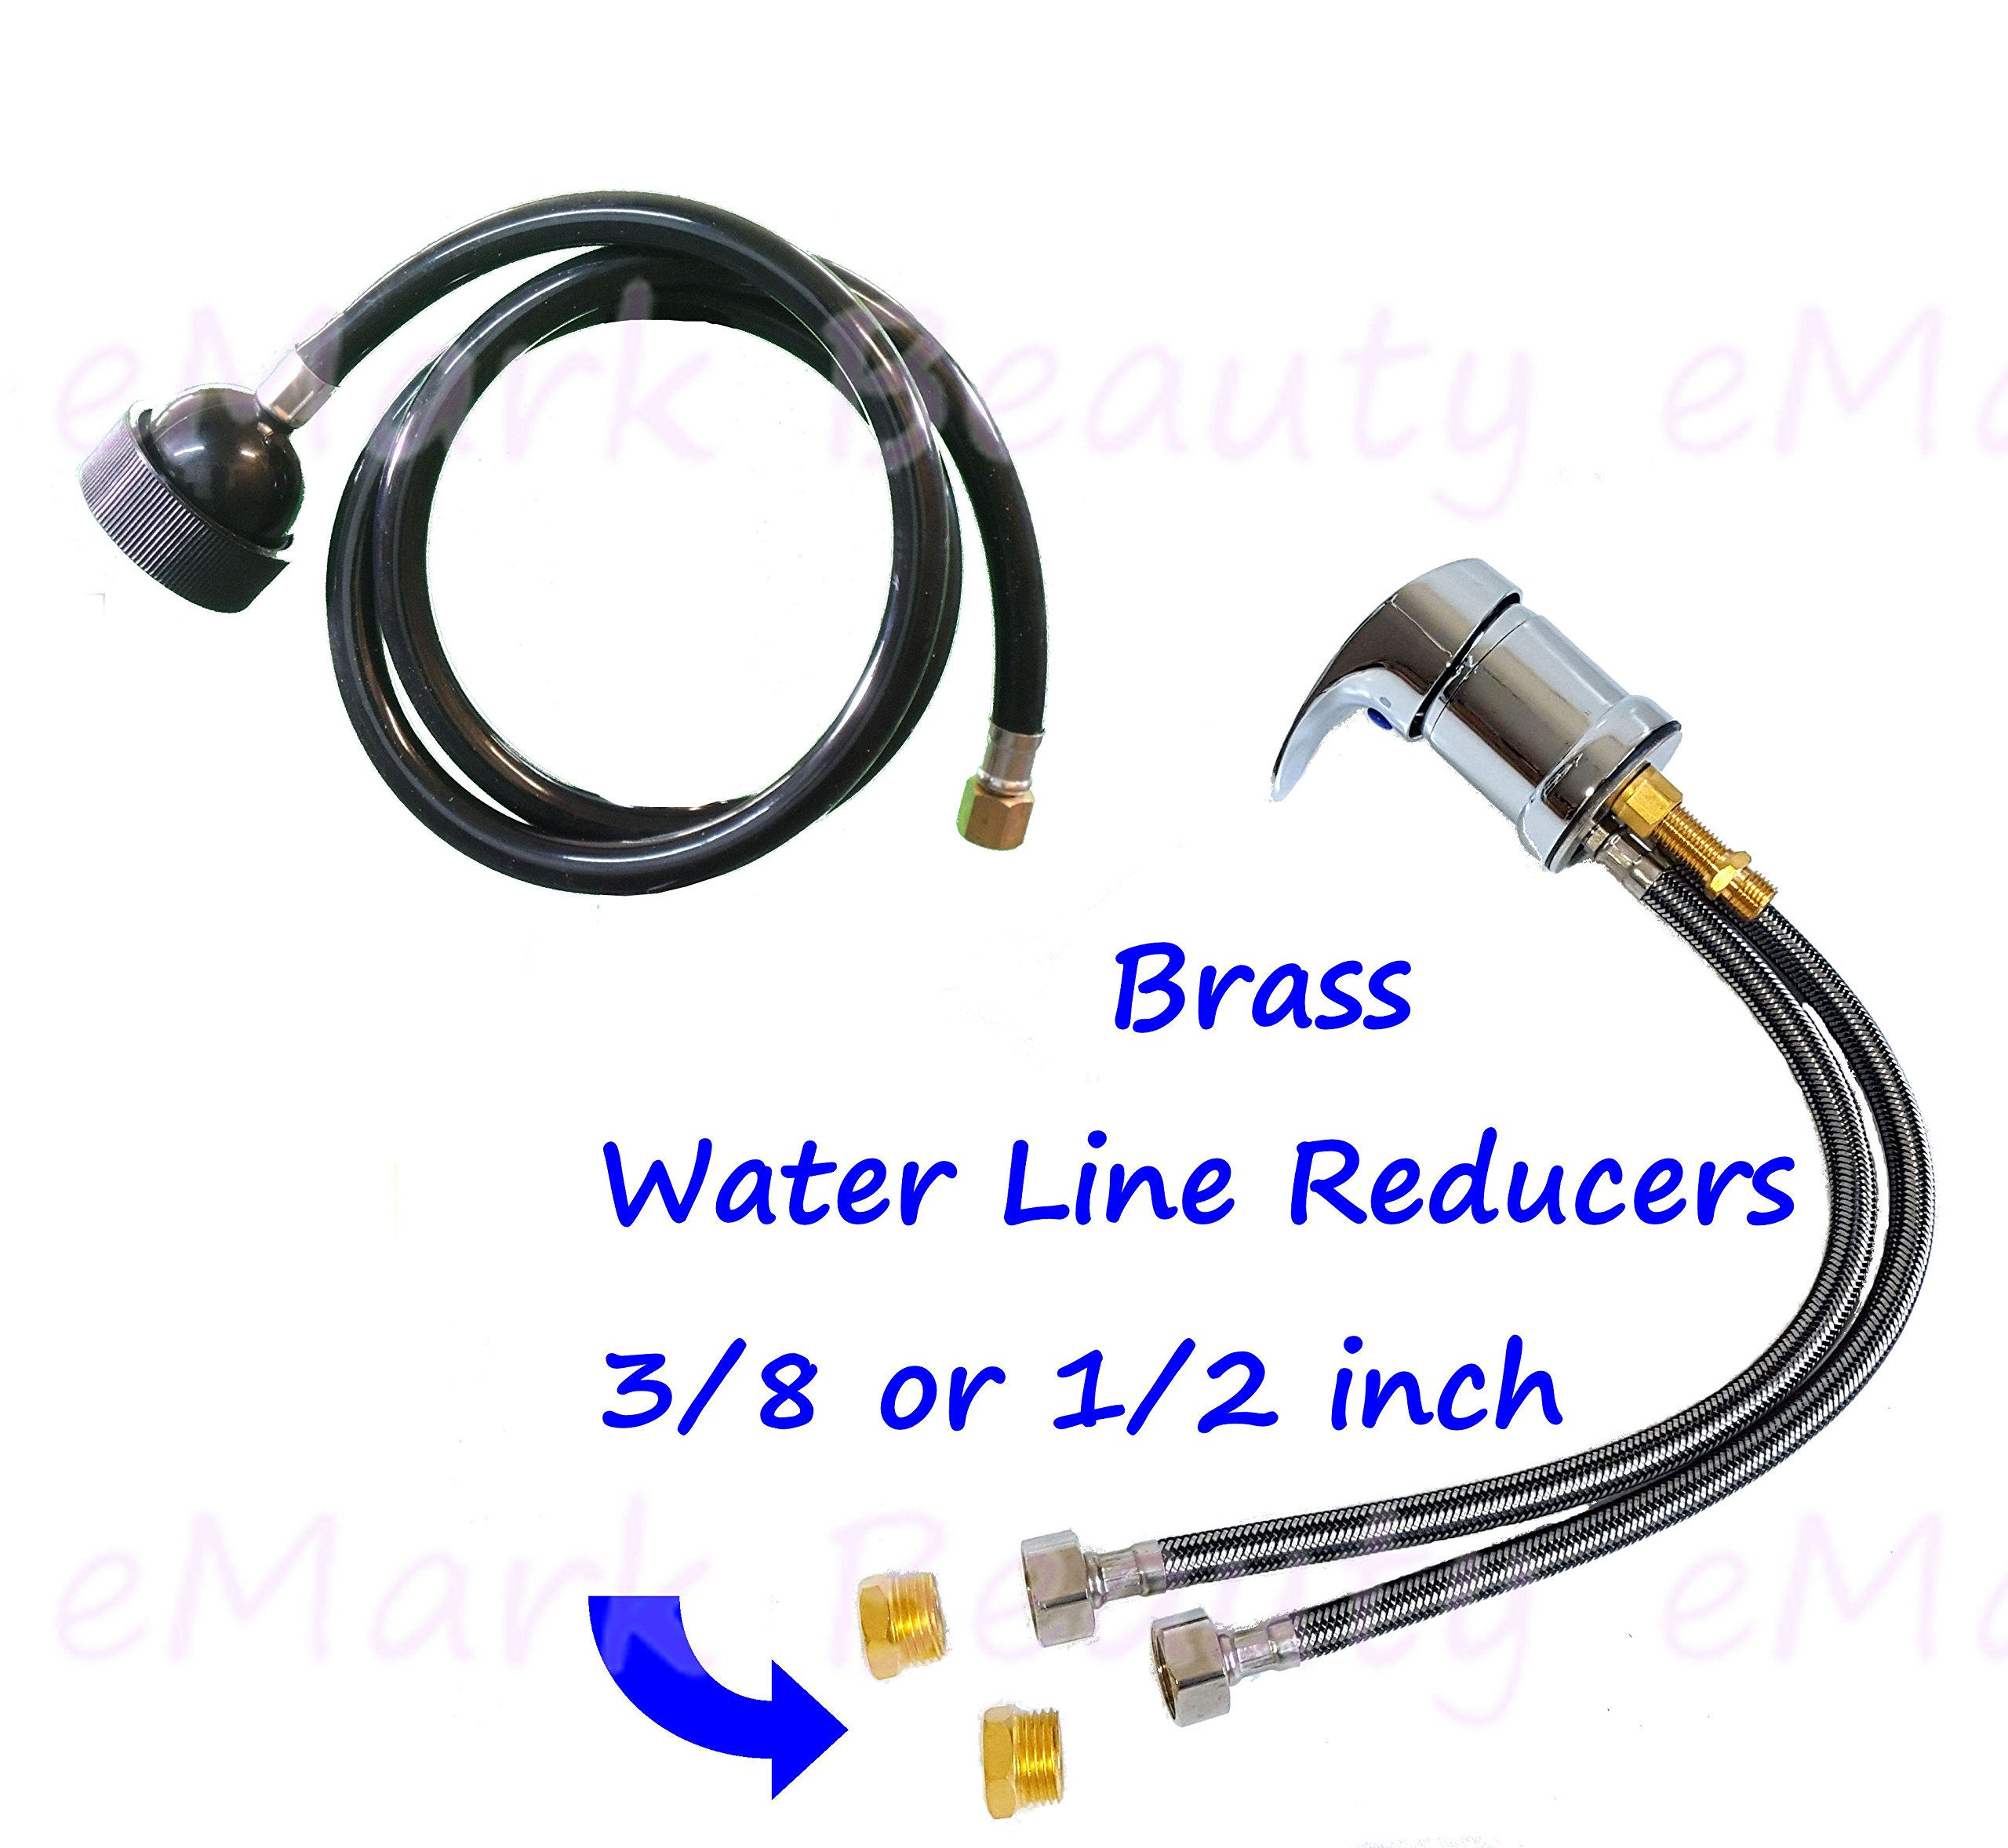 eMark Faucet and Spray Hose for Beauty Salon Shampoo Bowl Parts Kit with Reducers Included - 1164SH by eMark Beauty